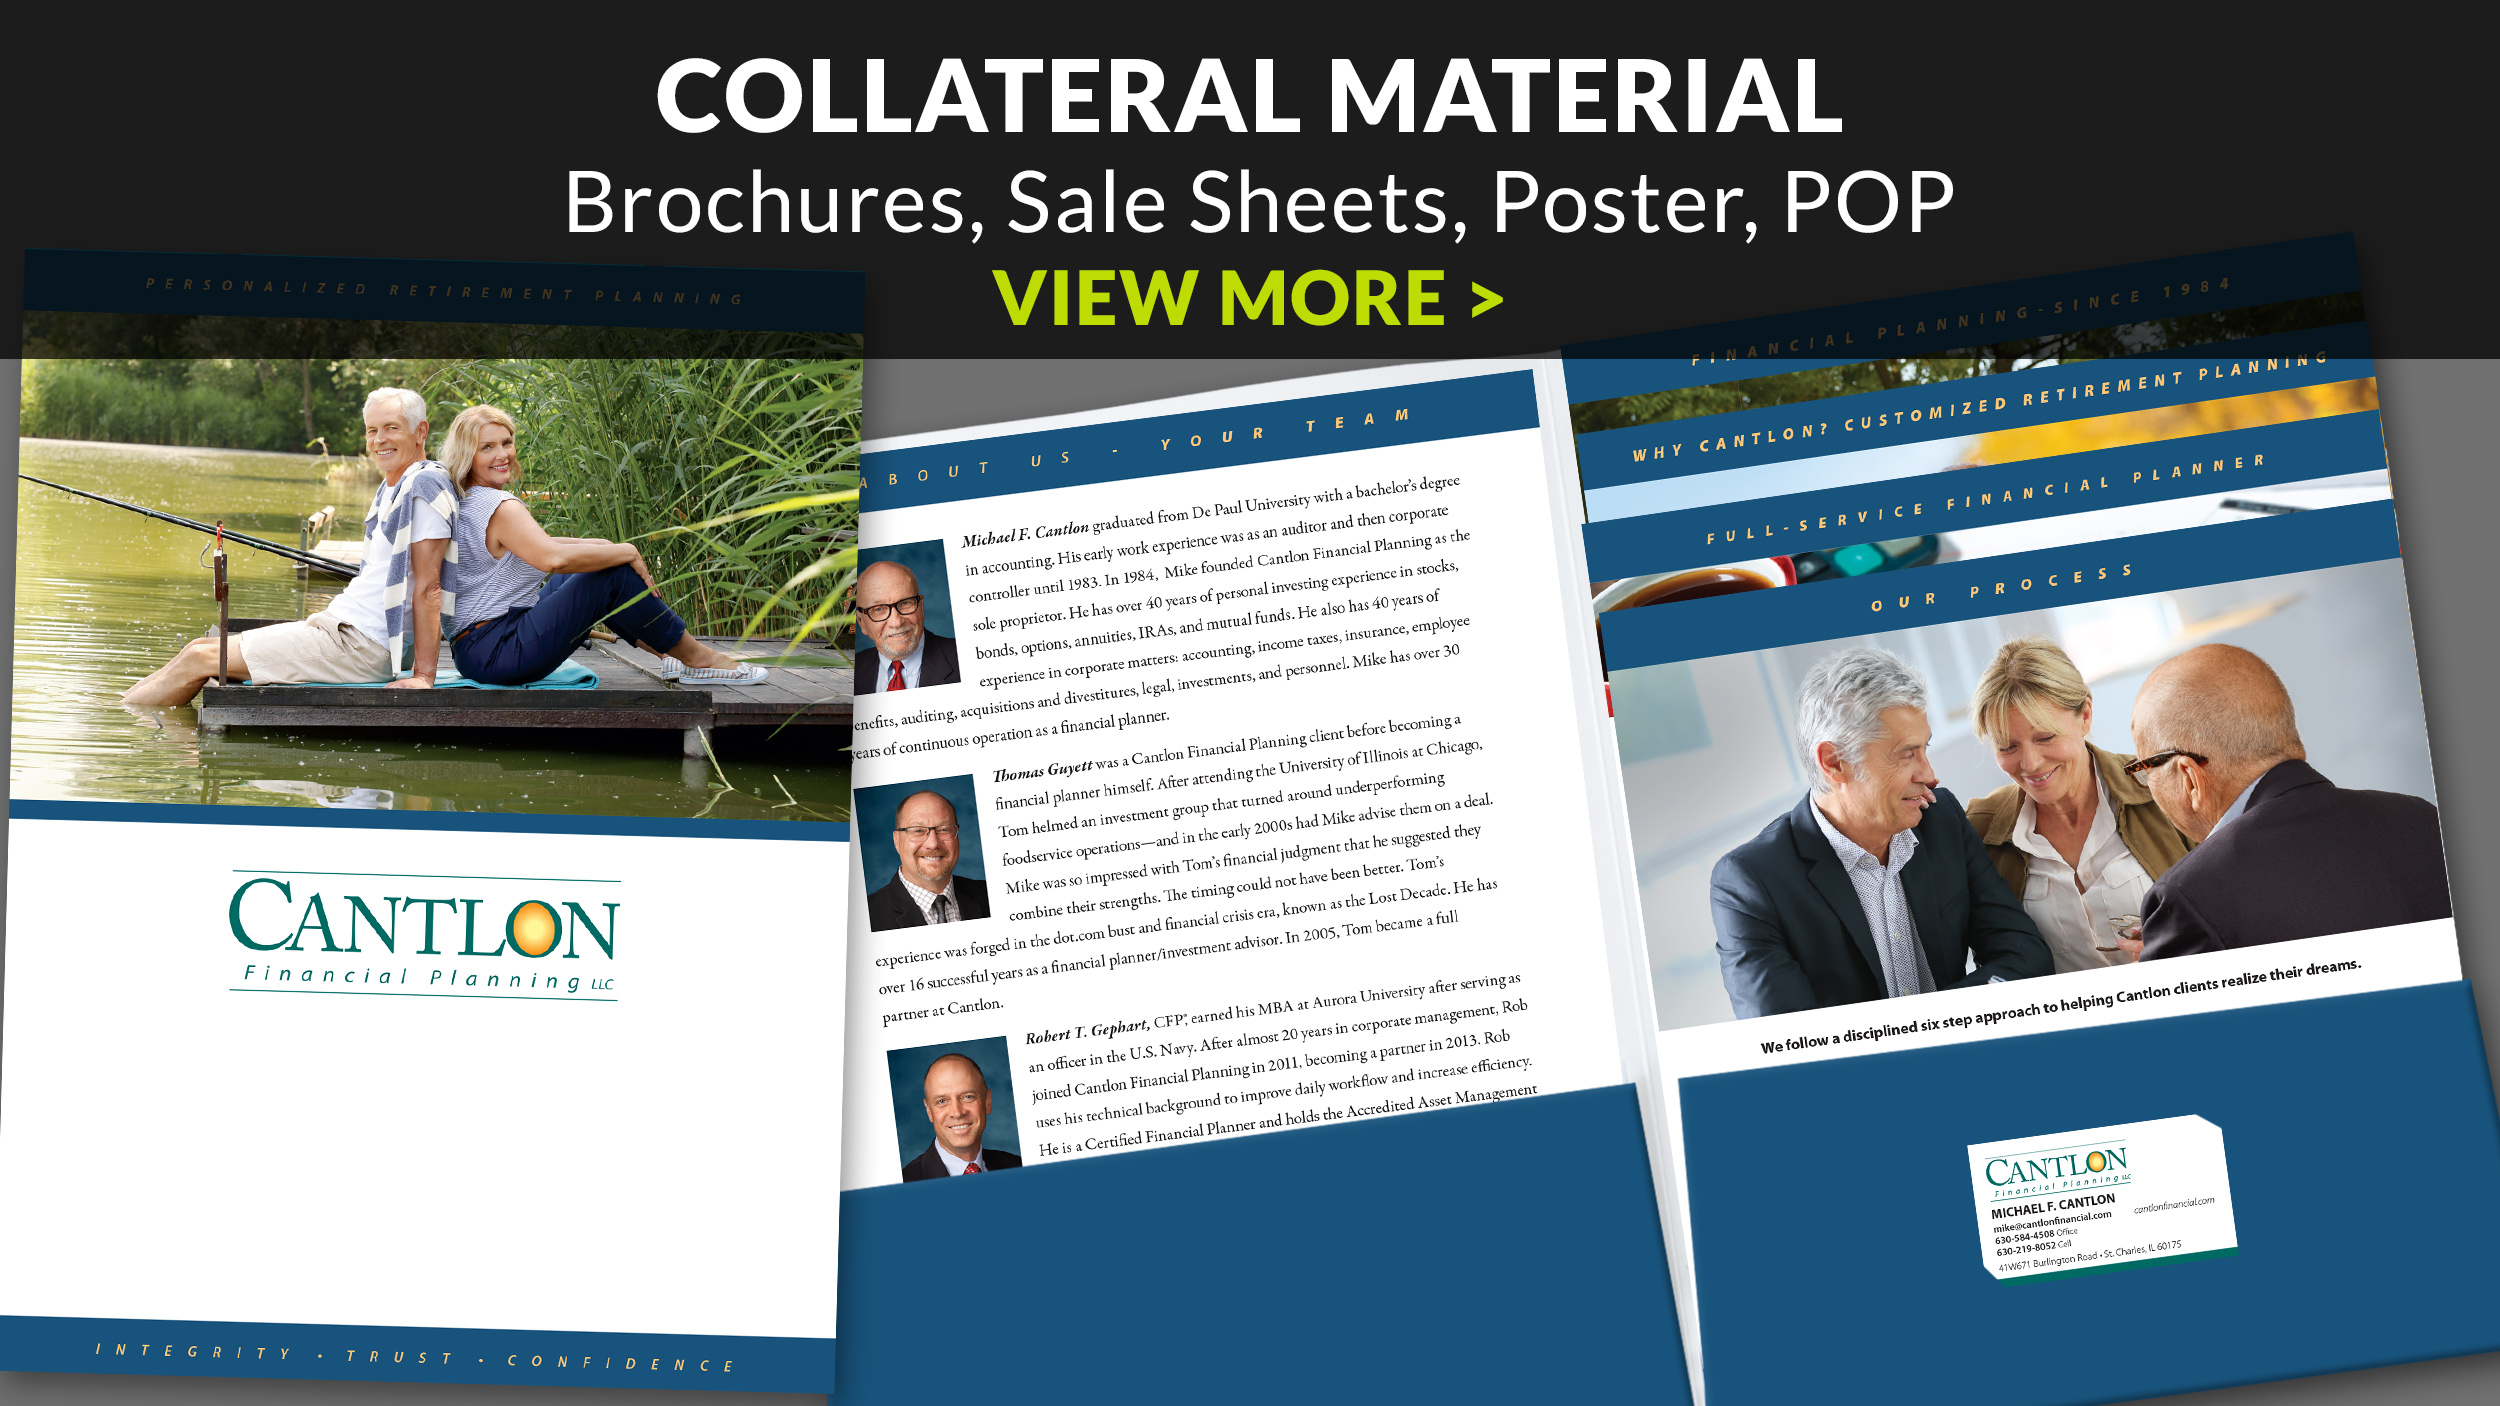 Collateral - Brochures, Sale Sheets, Poster, POP -    View More >